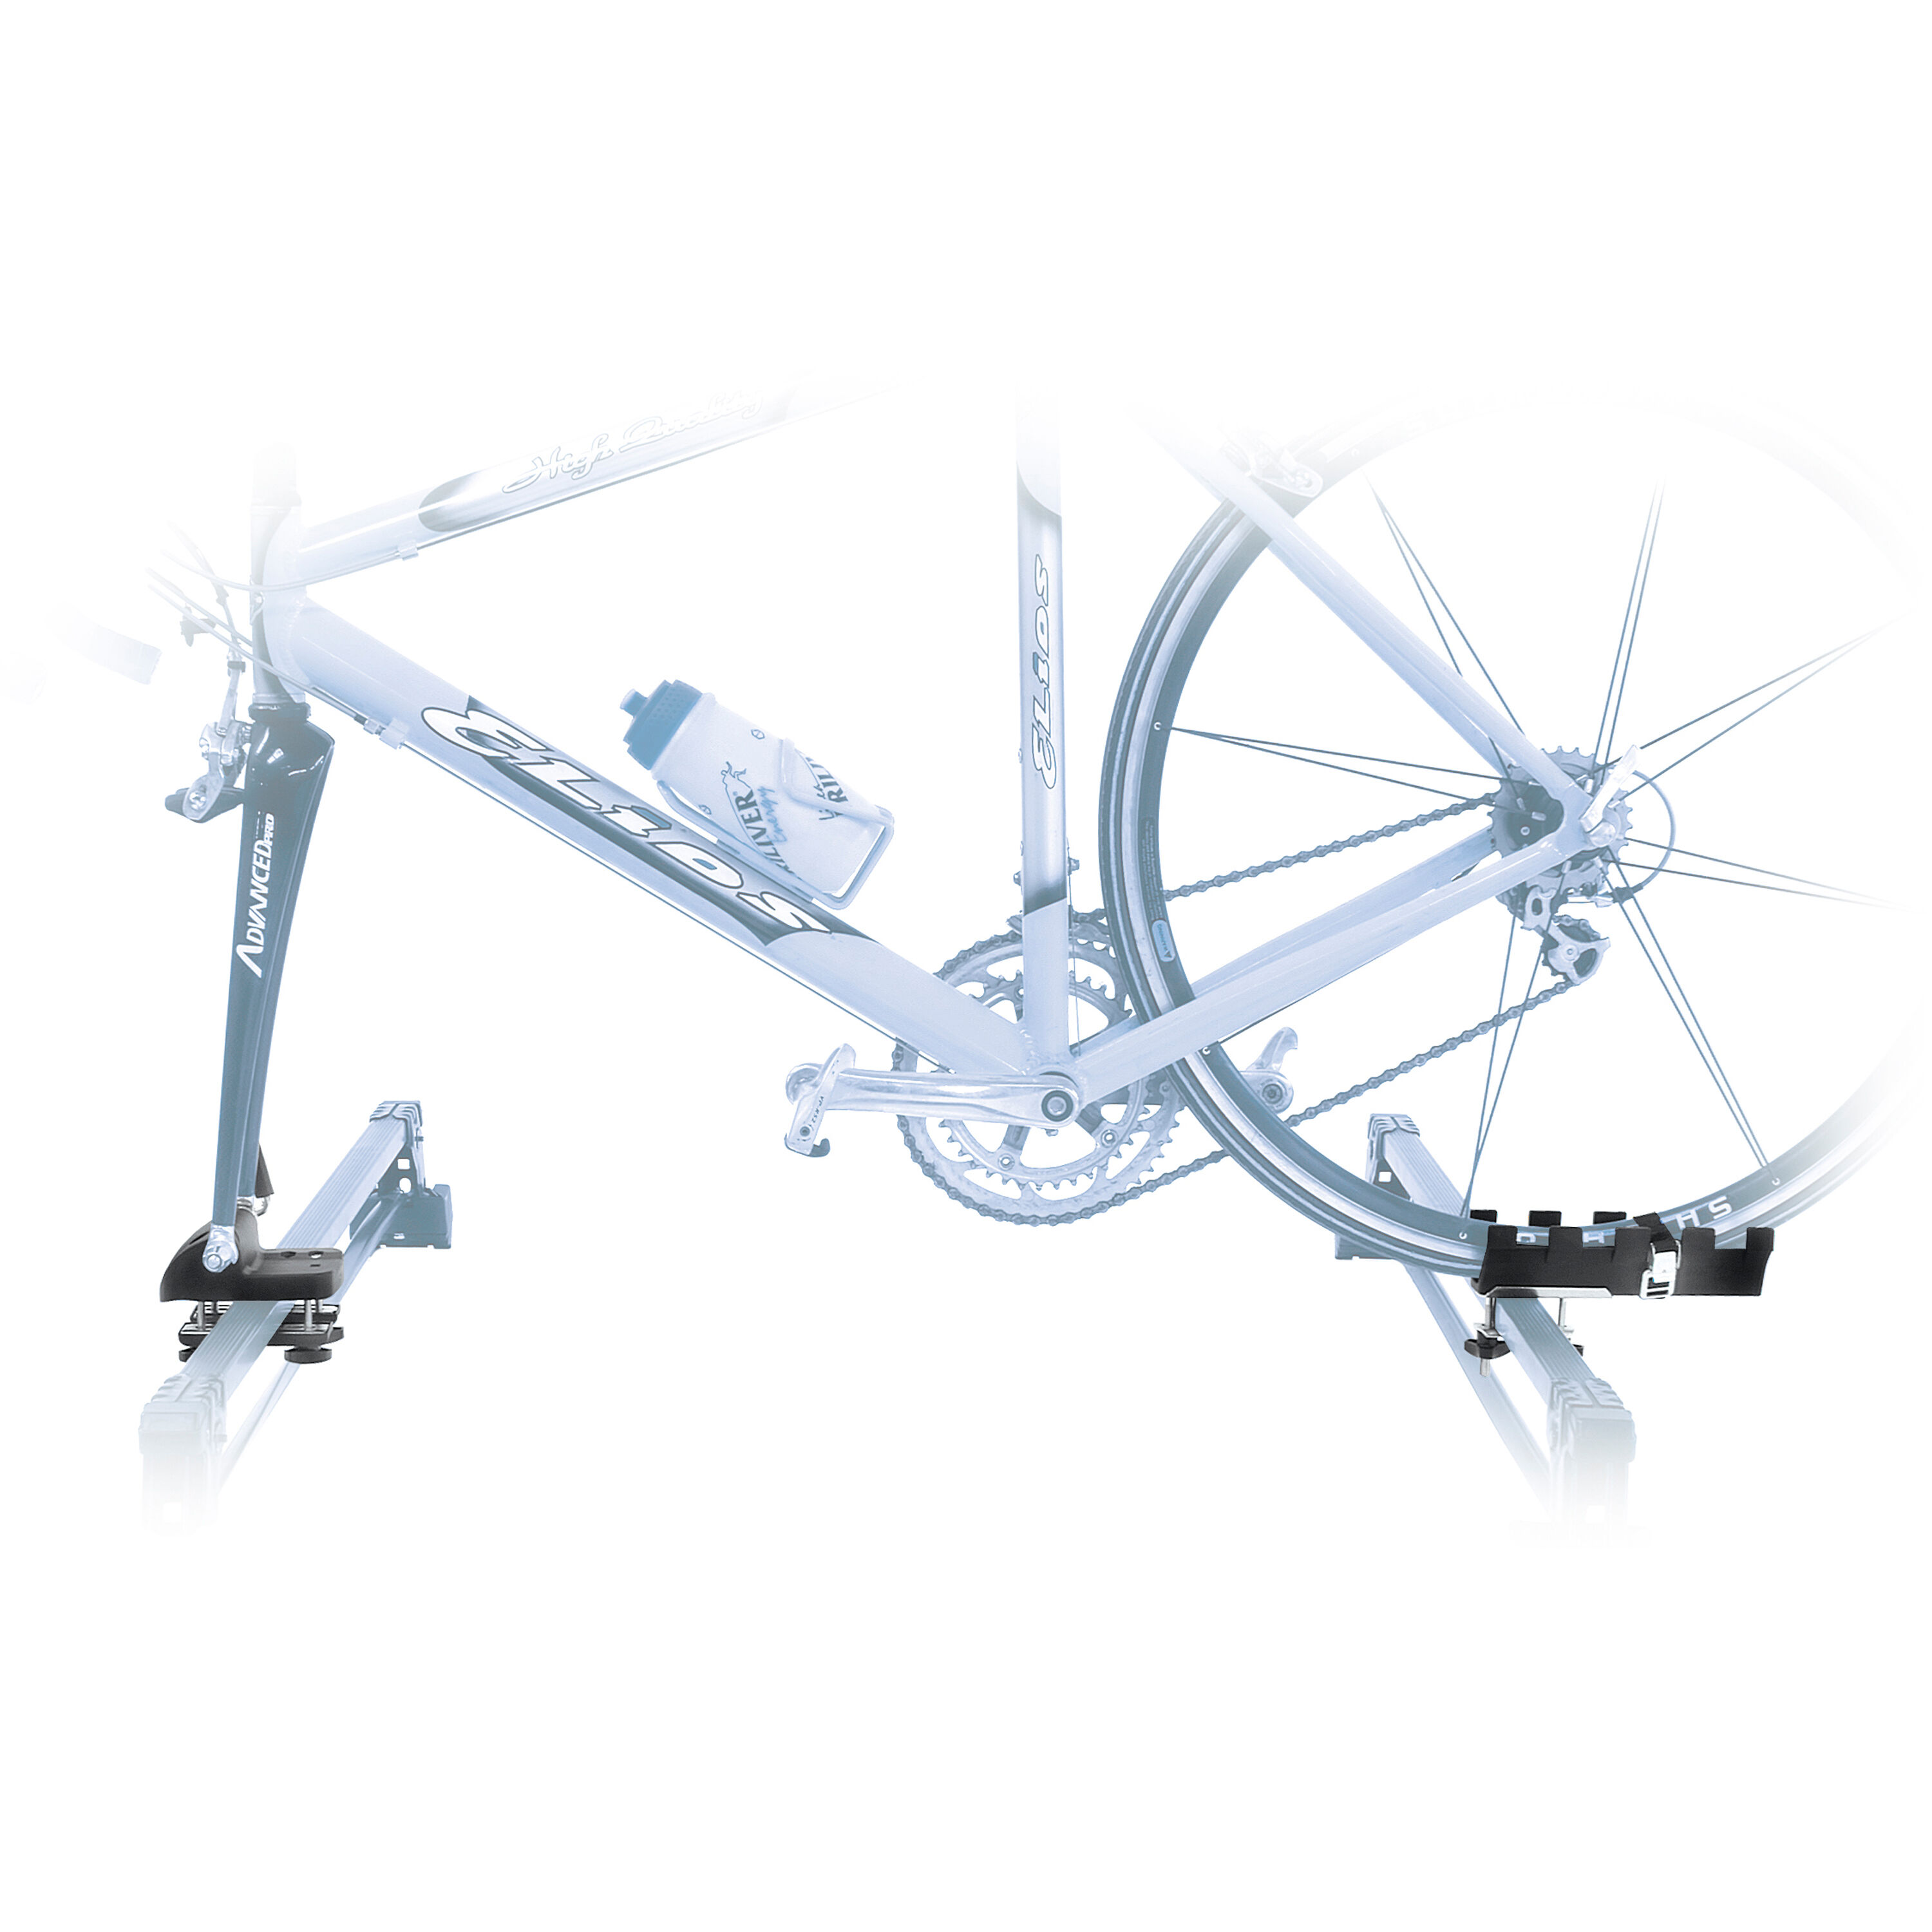 ls rack proride accessories category online buy carriers roof and landscape bike thule kullaberg racks shop